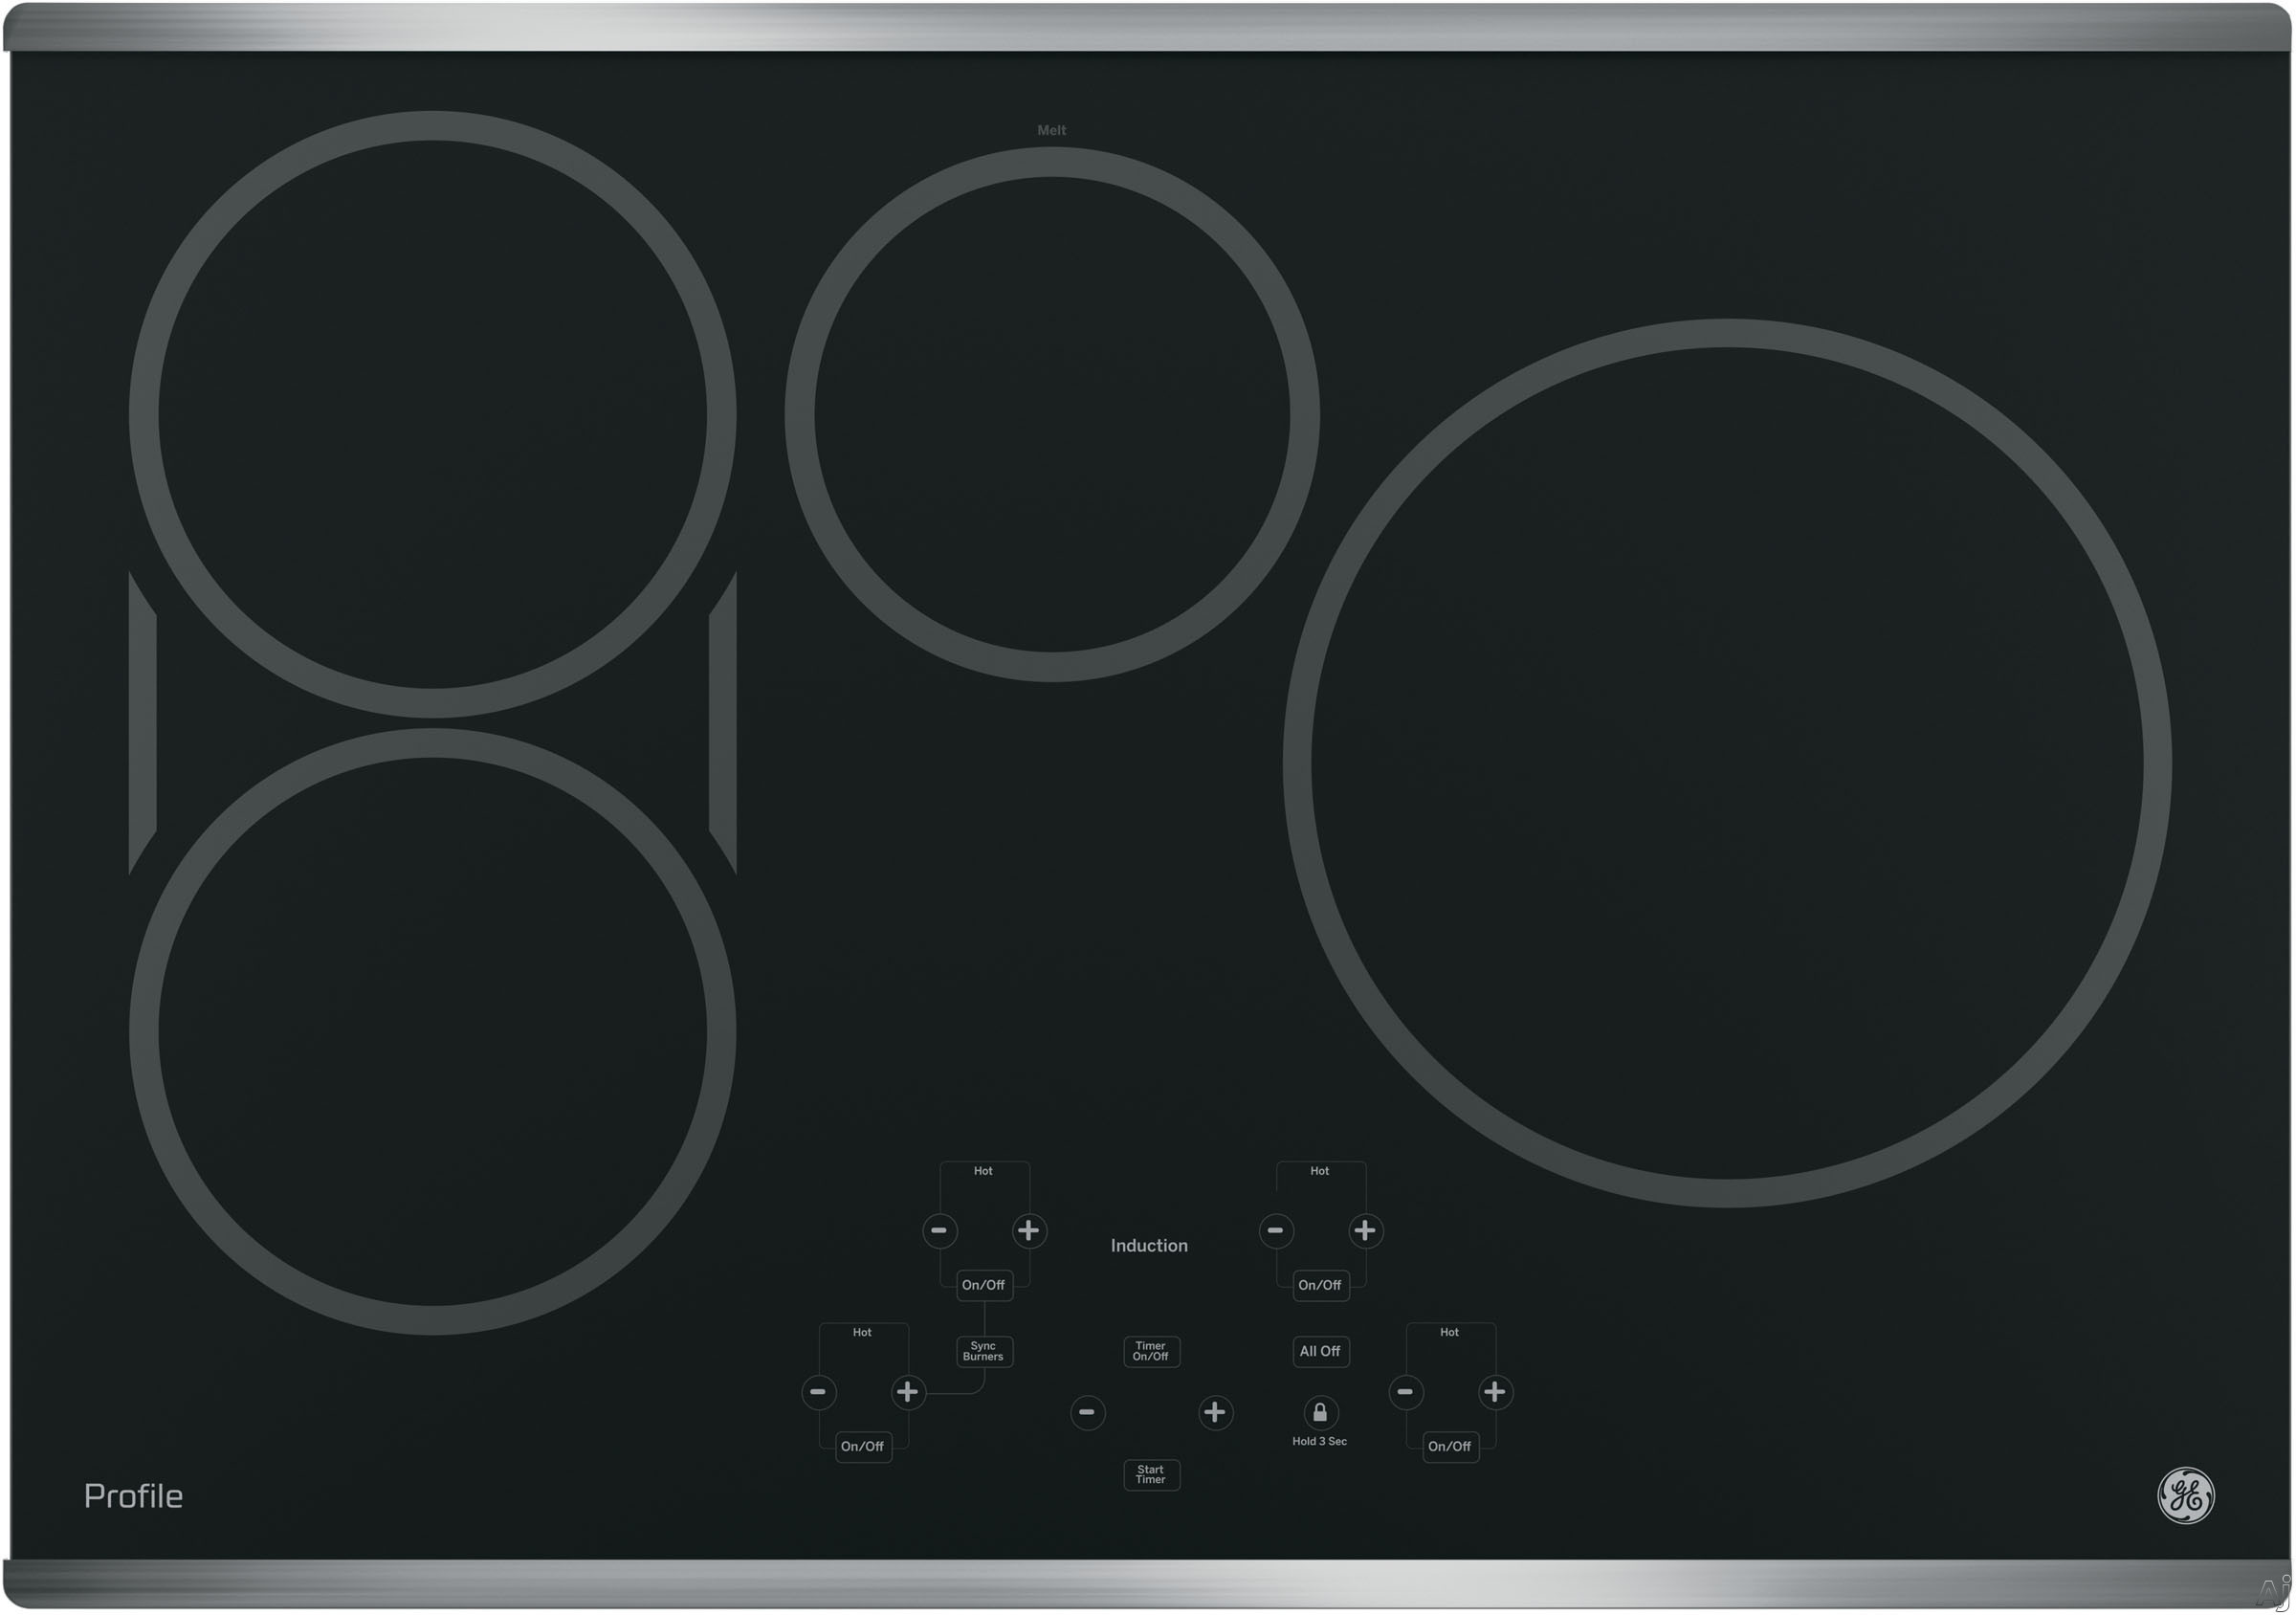 GE Profile PHP9030SJSS 30 Inch Induction Cooktop with 4 Cooking Zones, SyncBurners, Digital Red LED Touch Controls, Kitchen Timer, Control Lock, All-Off Feature, Hot Surface Indicator Light, ADA Compl